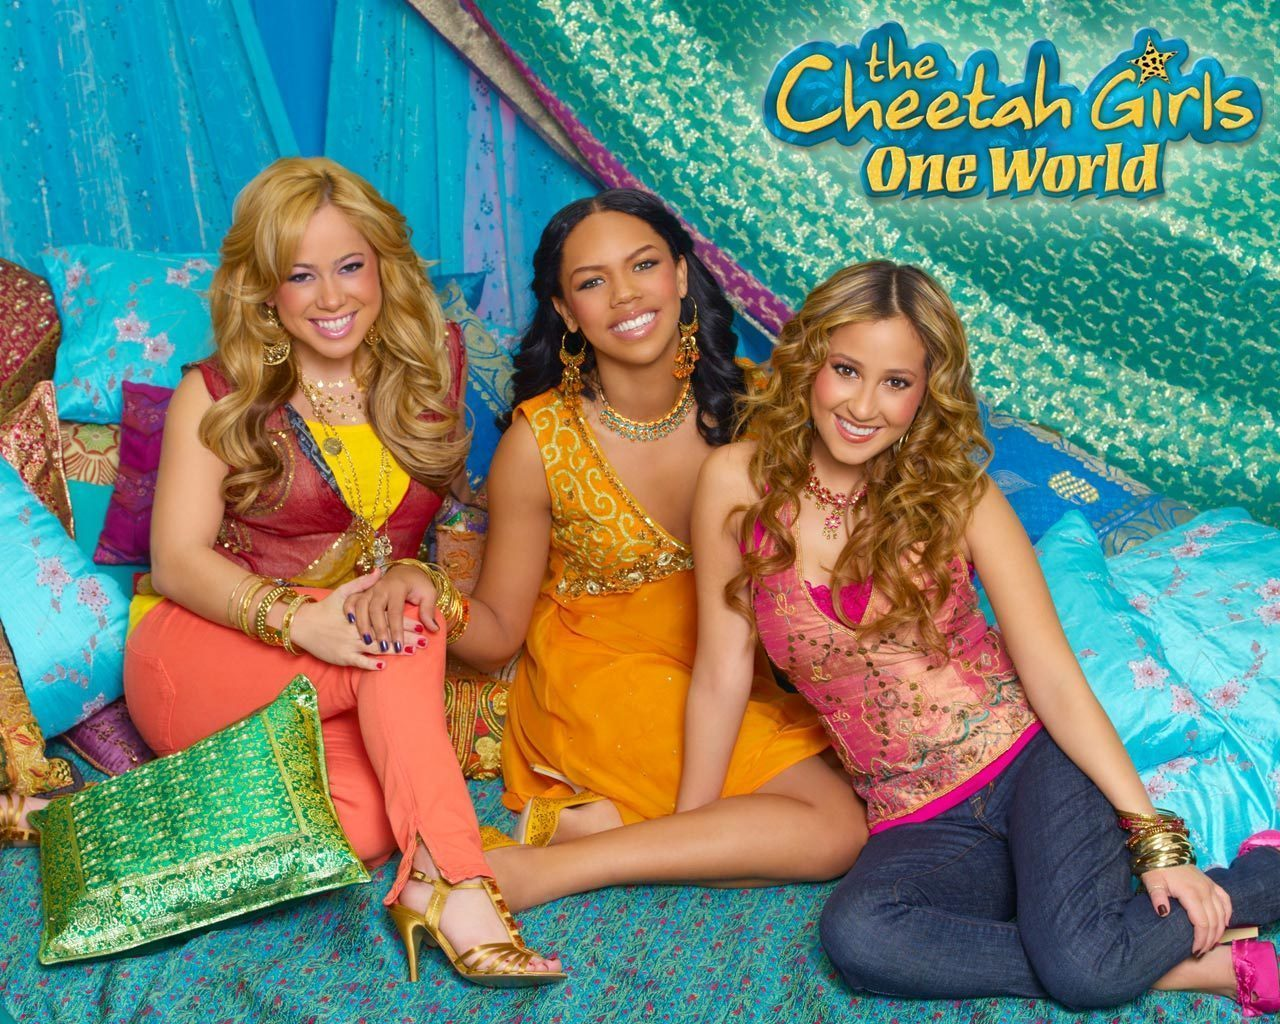 Cheetah Girls:4 Cheetah Fans: